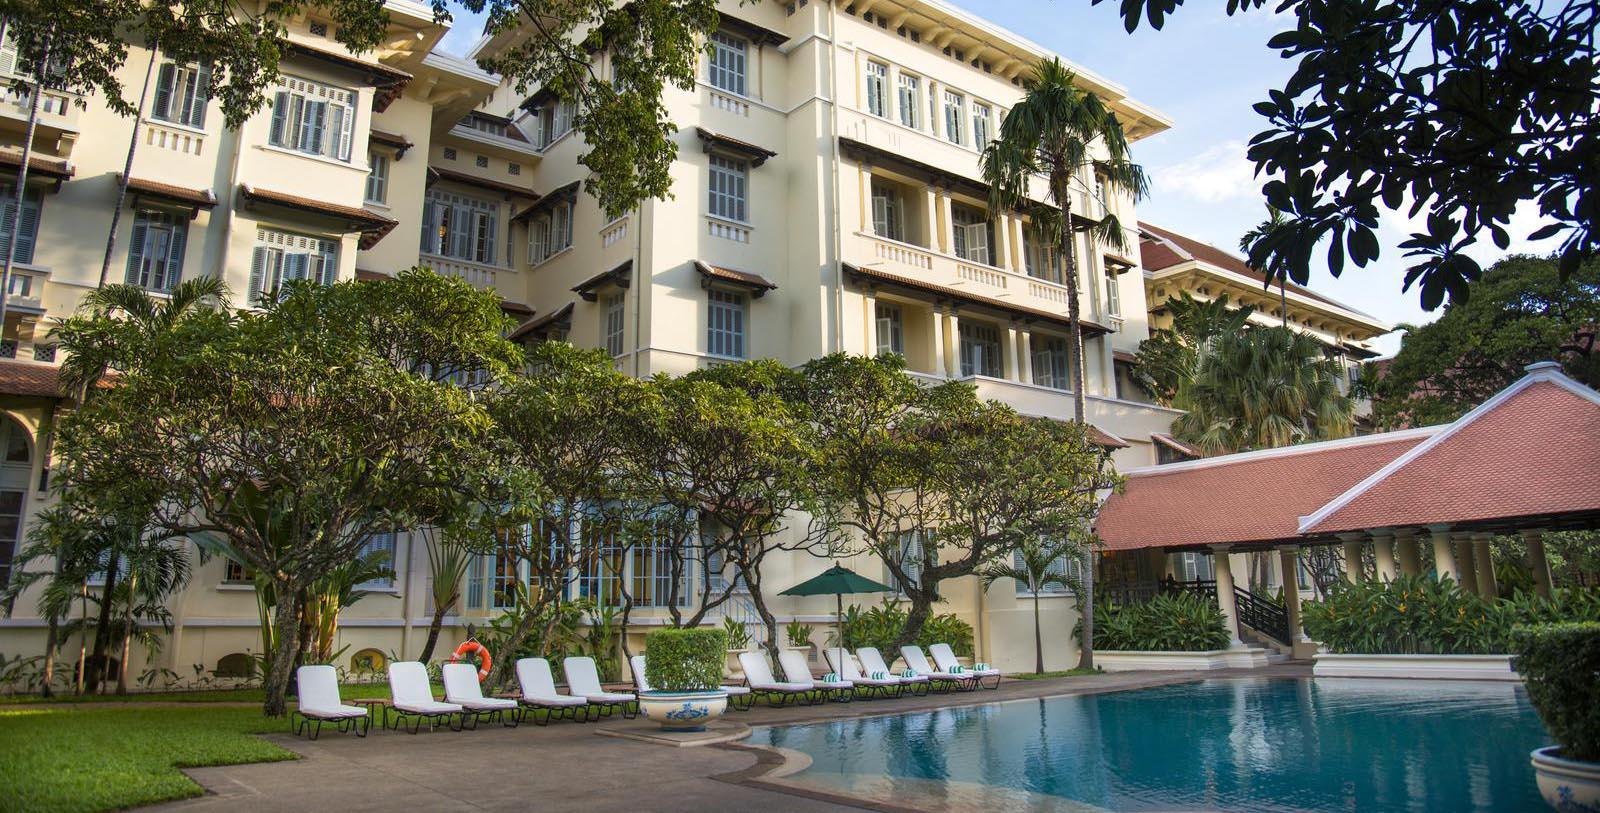 Image of Pool Raffles Hotel Le Royal, 1929, Member of Historic Hotels Worldwide, in Phnom Penh, Cambodia, Special Offers, Discounted Rates, Families, Romantic Escape, Honeymoons, Anniversaries, Reunions